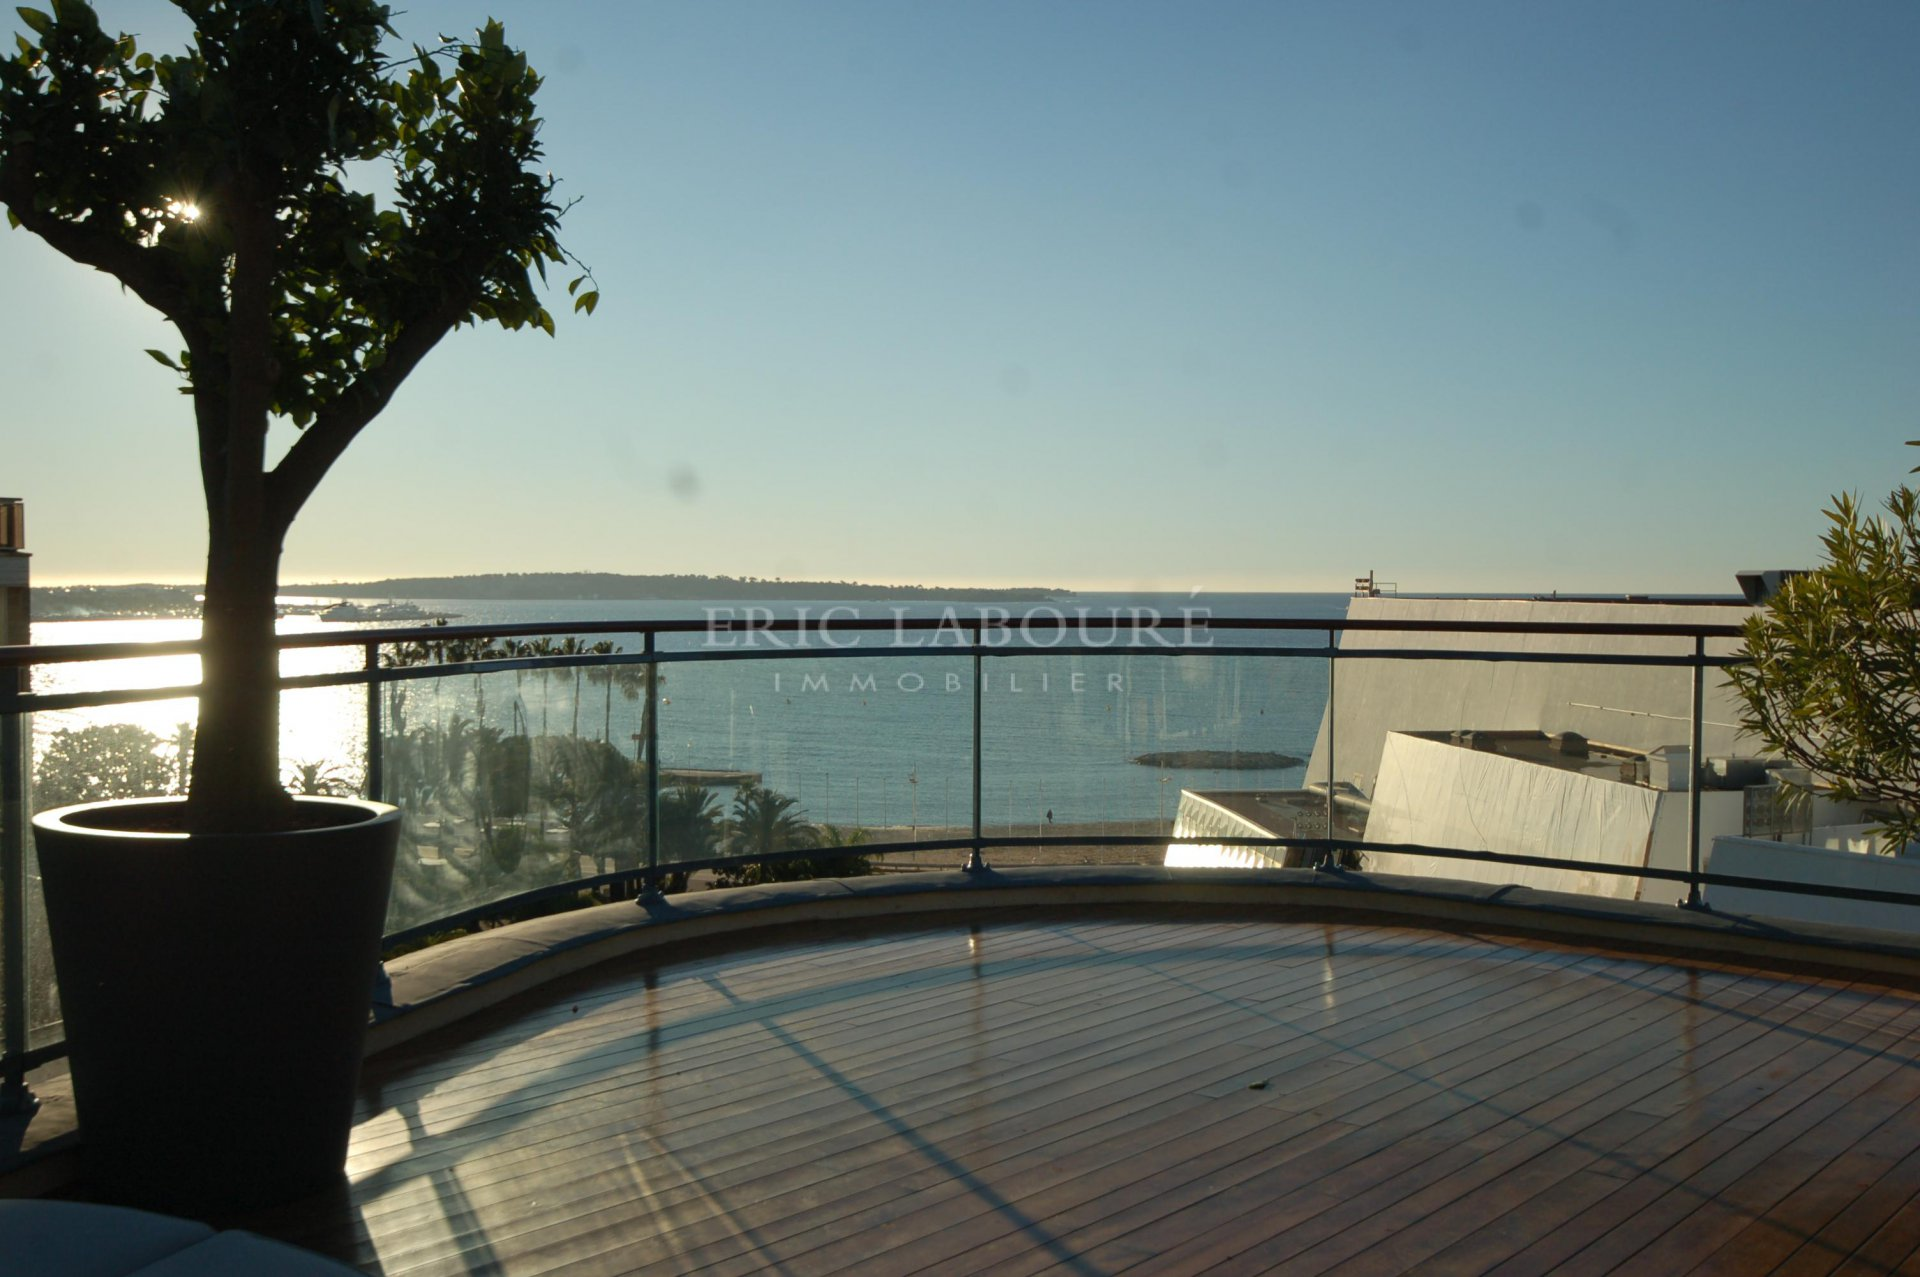 vente appartement Cannes croisette penthouse vue mer panoramique piscine